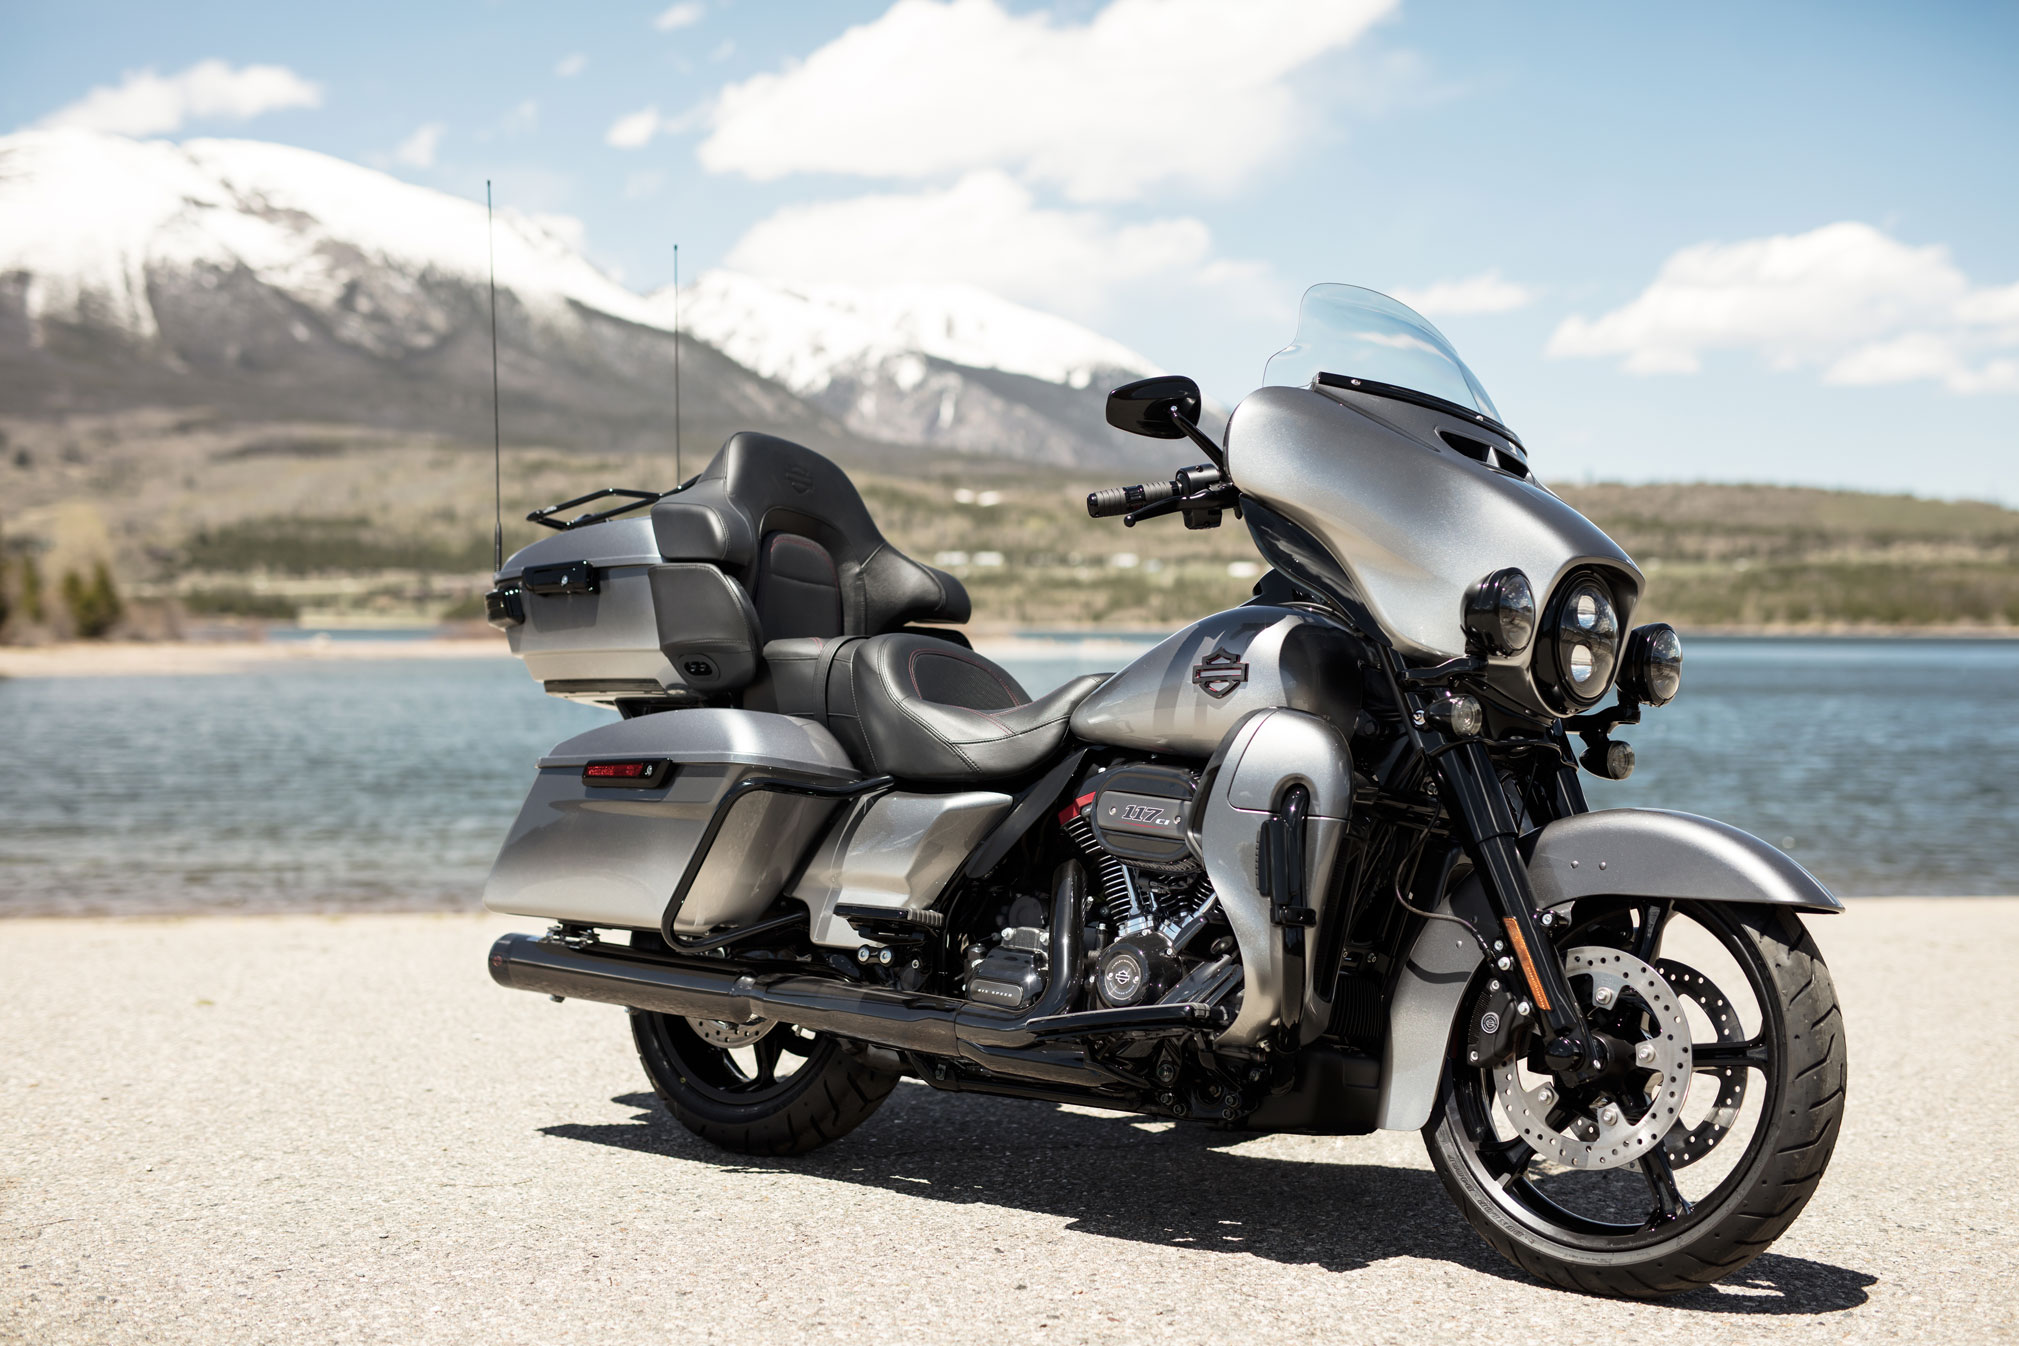 2019 Harley Davidson Cvo Limited Guide Total Motorcycle